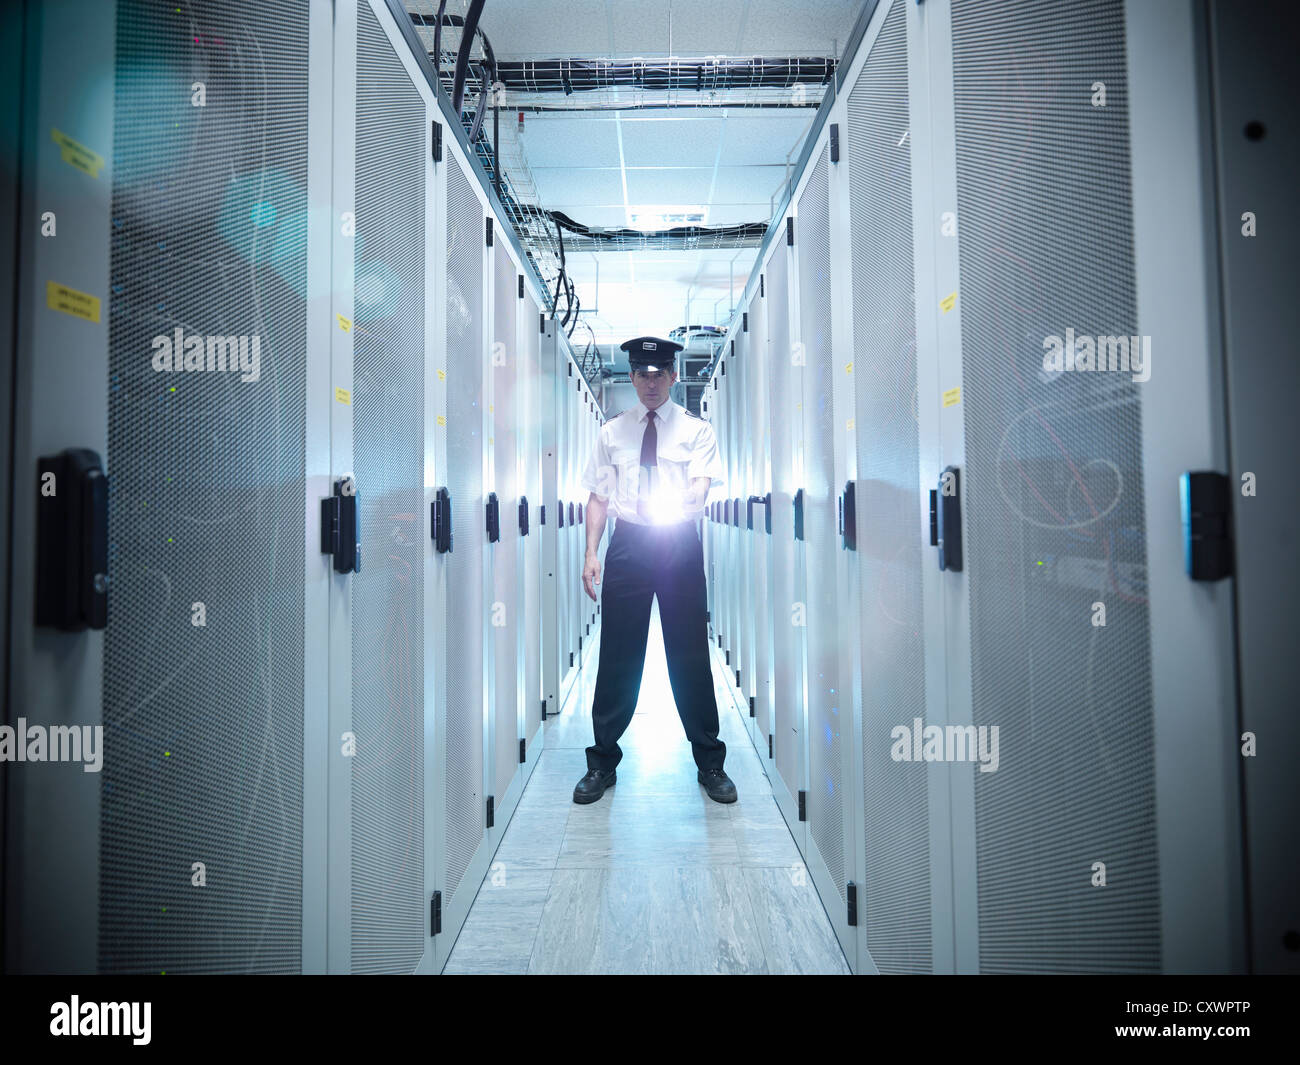 Security guard in server room Stock Photo